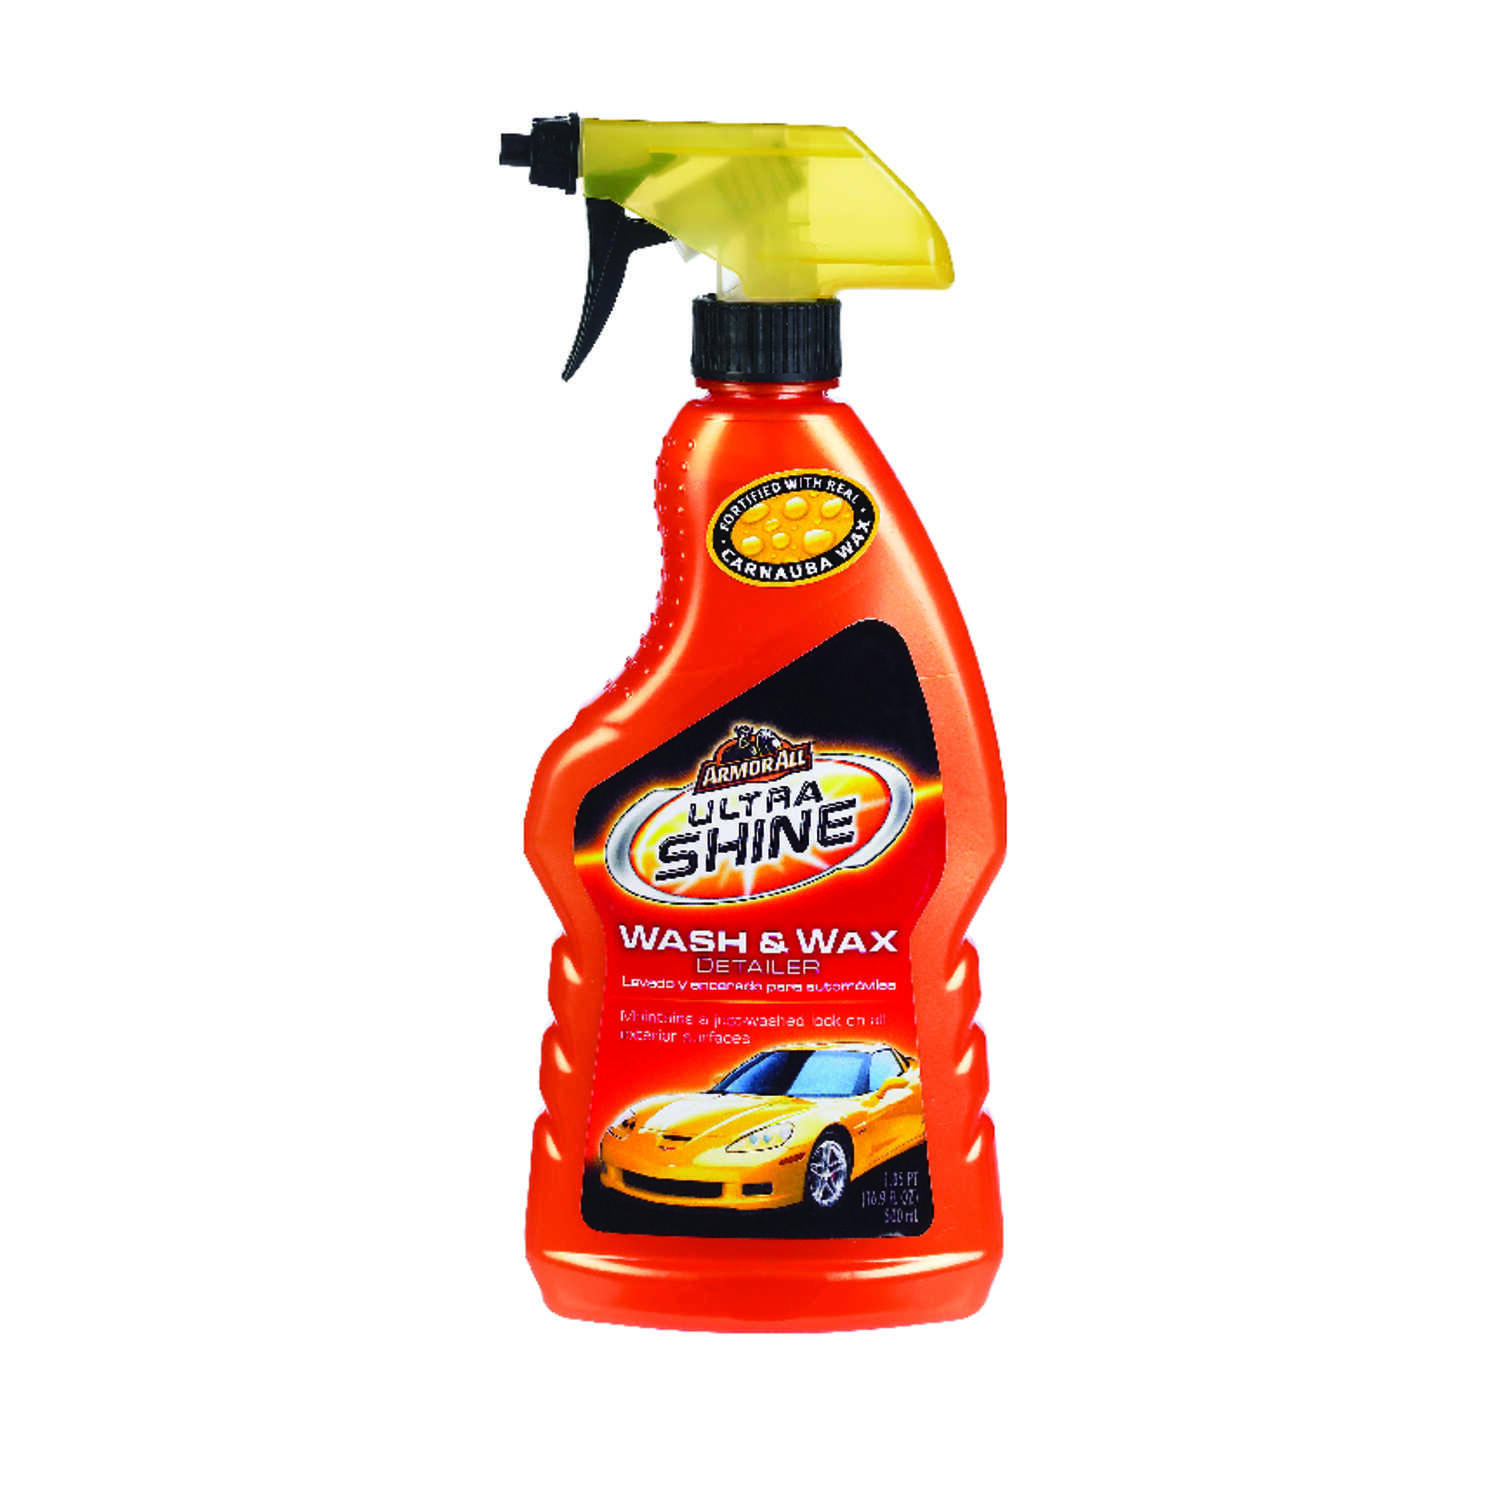 Armor All  Ultra Shine  Liquid  Automobile Polish/Wax  16.9 oz. For Removing Dirt And Stains